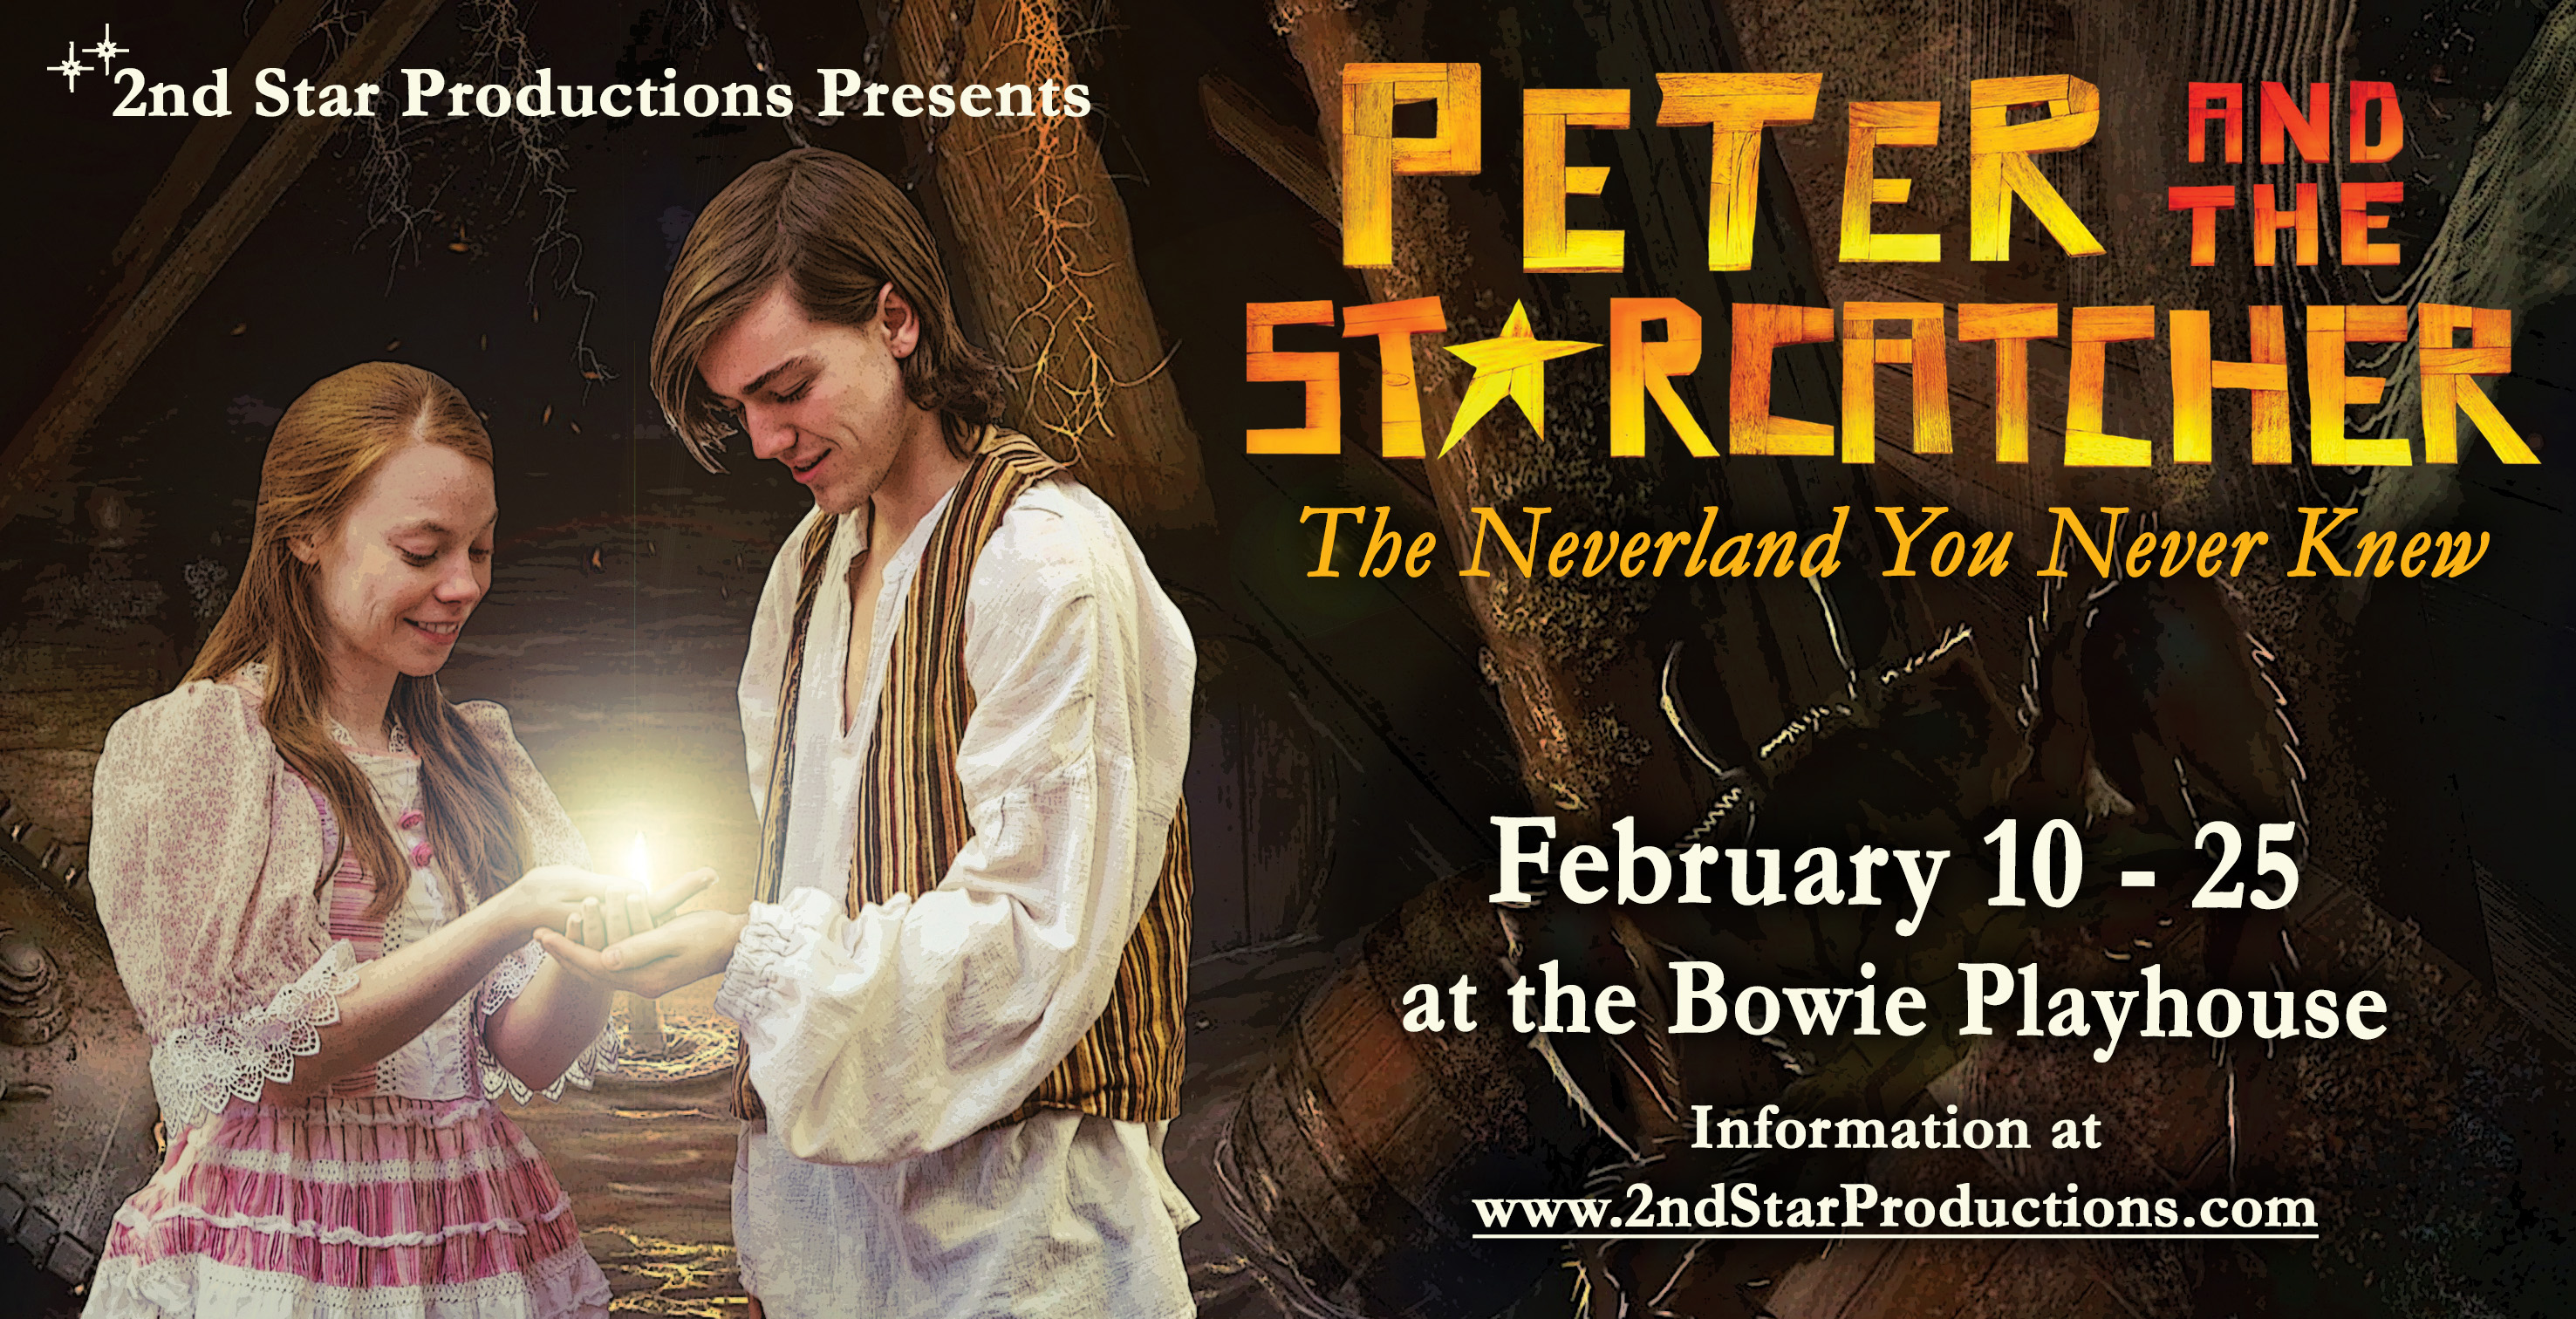 Facebook 20event 20peter 20and 20the 20starcatcher 20smaller